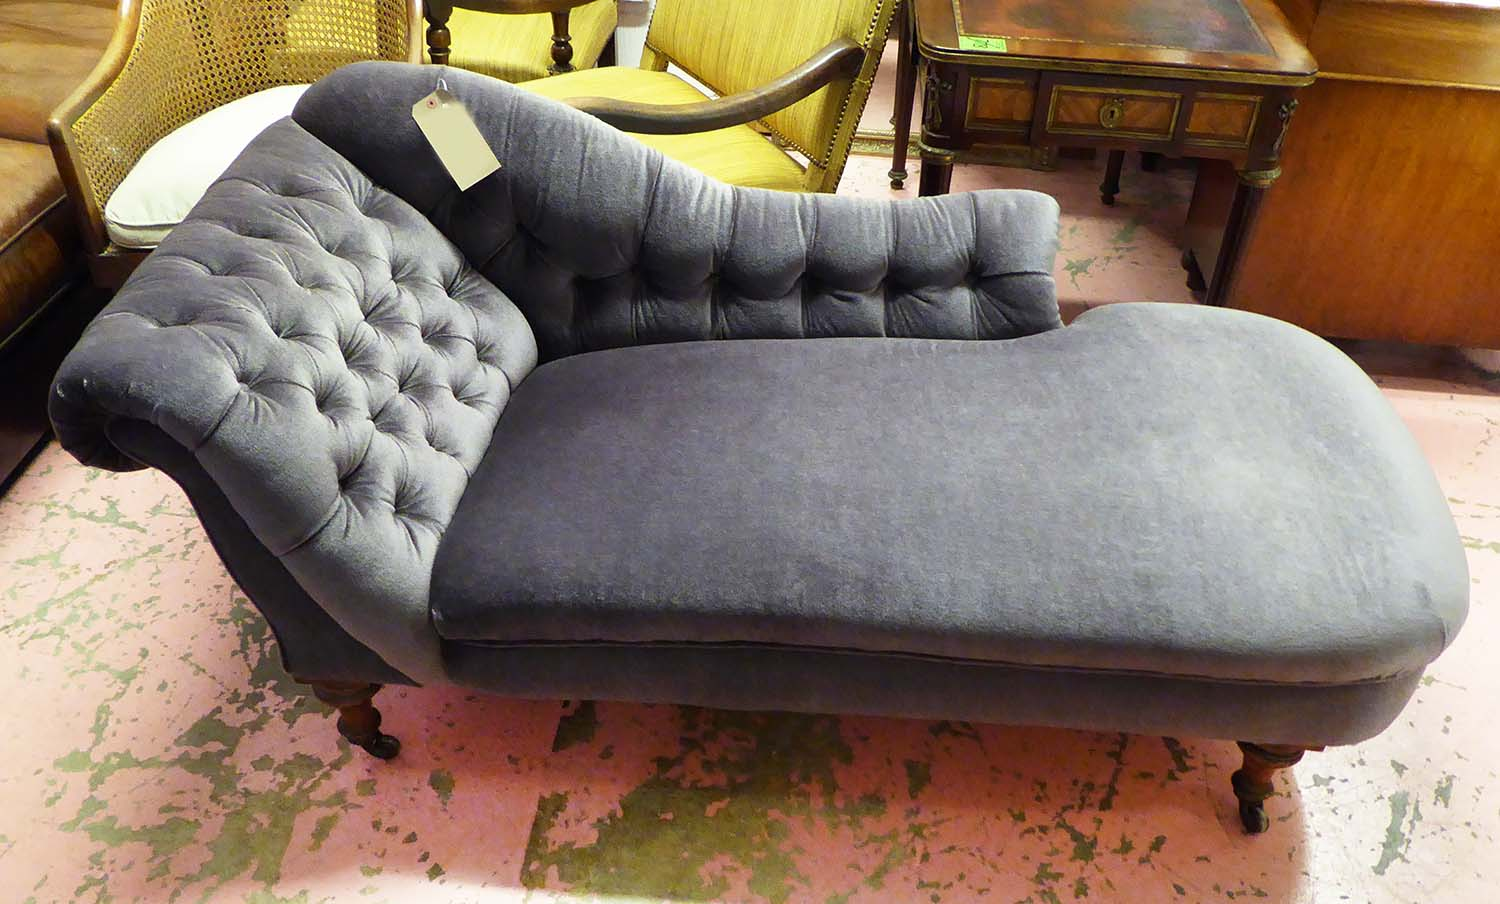 La Chaise Longue Catalogue Chaise Longue Victorian Walnut Re Upholstered In Grey Buttoned